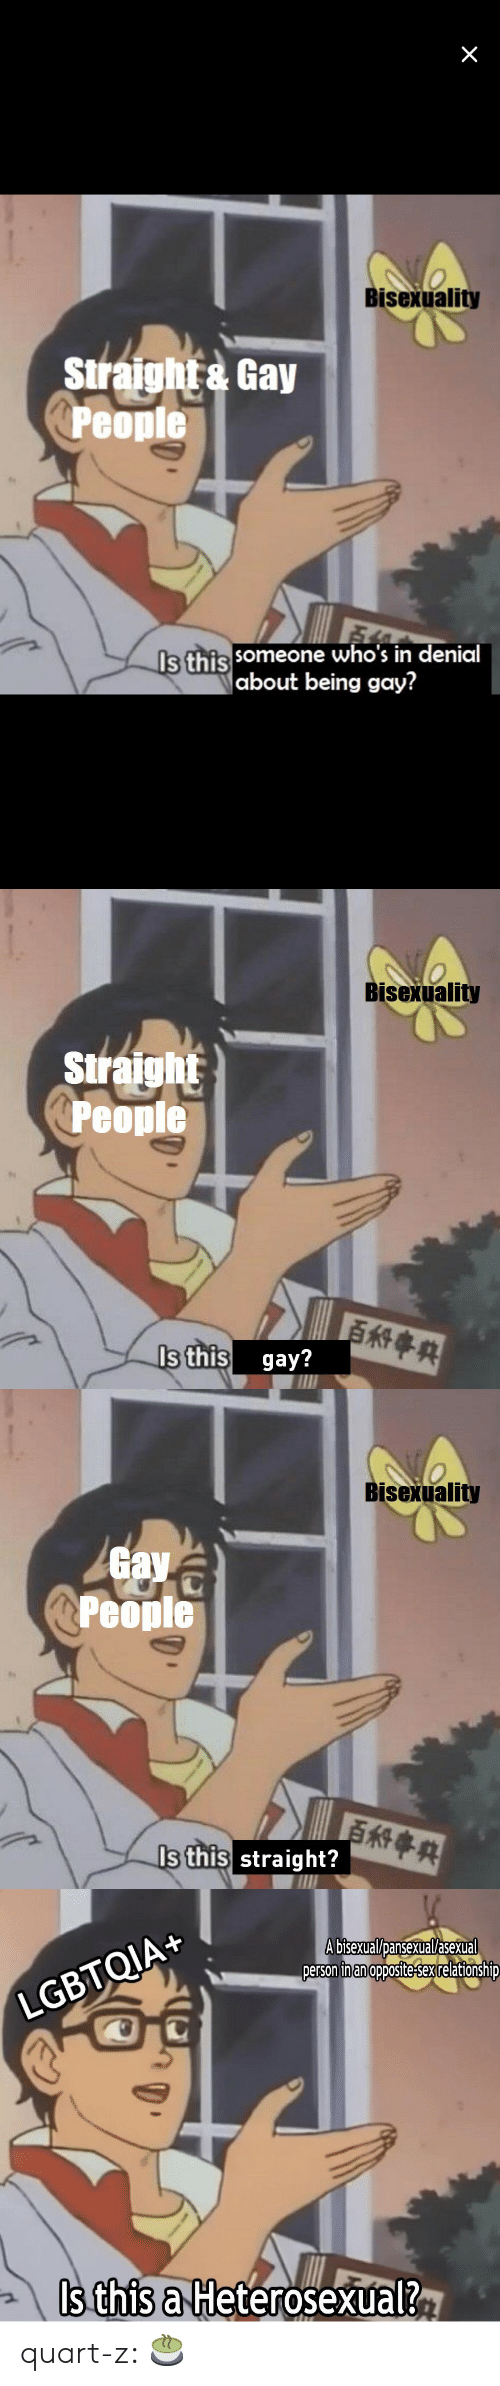 in denial: Bisexuality  Siraht Gay  Peopie  Is this  someone who's in denial  about being gay?   Bisexuality  Siraight  People  s this gay?   Bisexuality  av  People  Is this straight?   LGBTQIA+  A bisexual/Dansexual/asexual  person inan opposite-sex relationshiD  Is this a Heterosexual? quart-z:  🍵